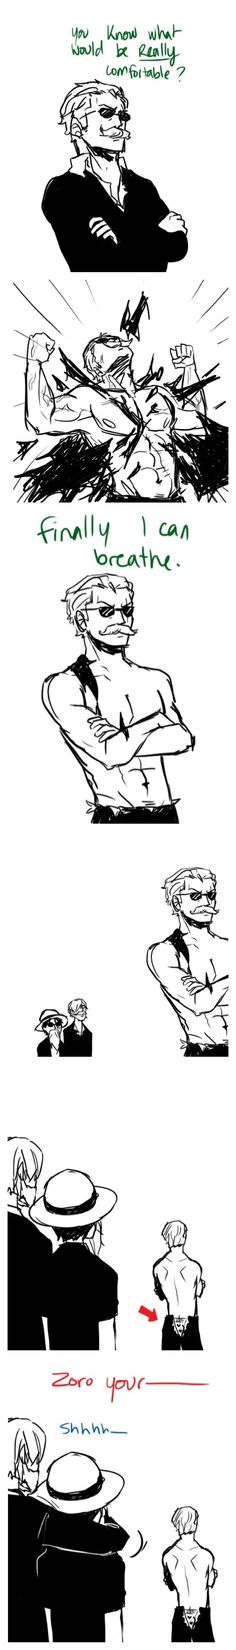 """Little cute ass, Zoro :3 and love how Sanji's just like """"shhh let him spoil his image"""""""